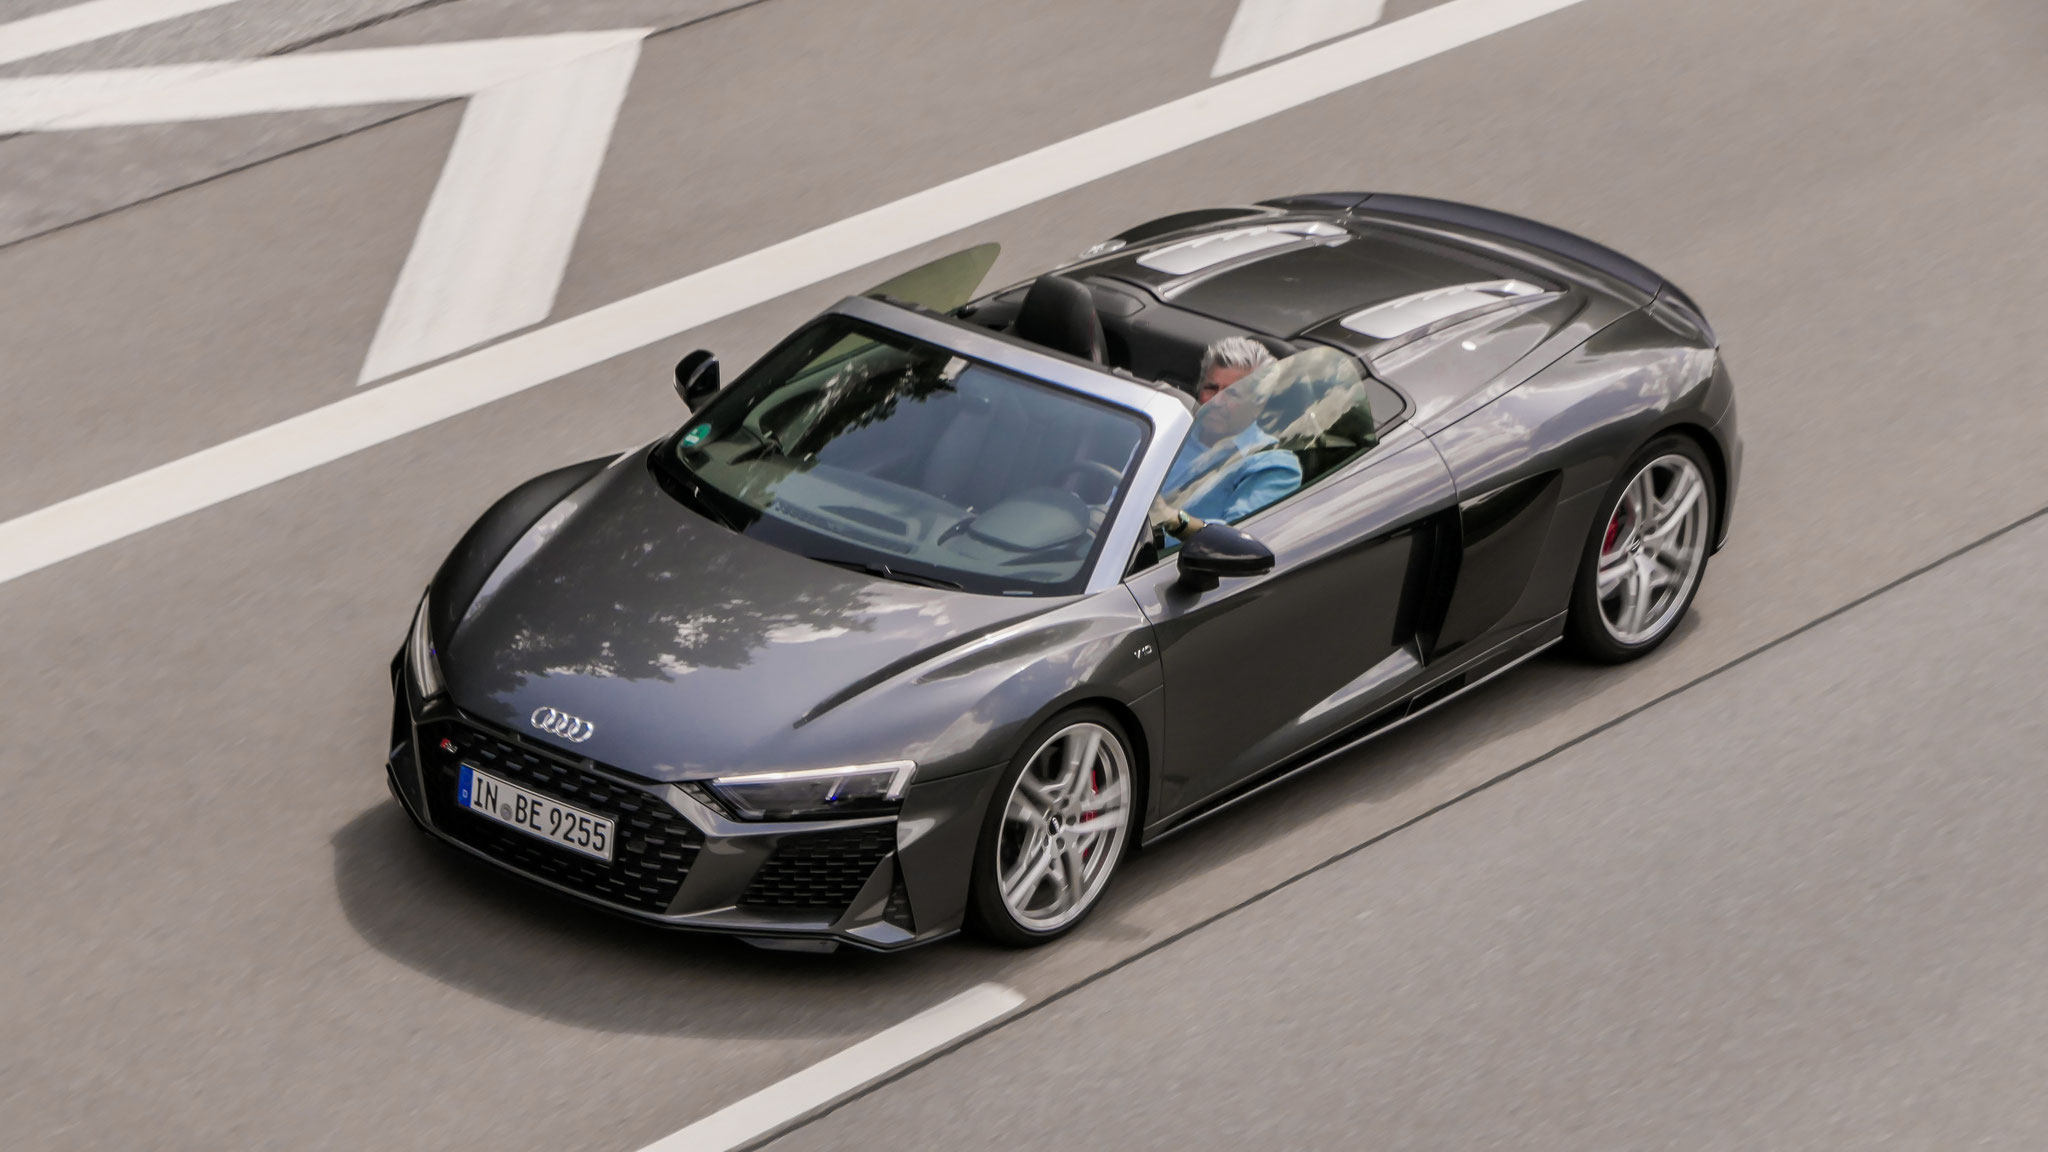 Audi R8 V10 Spyder - IN-BE-9255